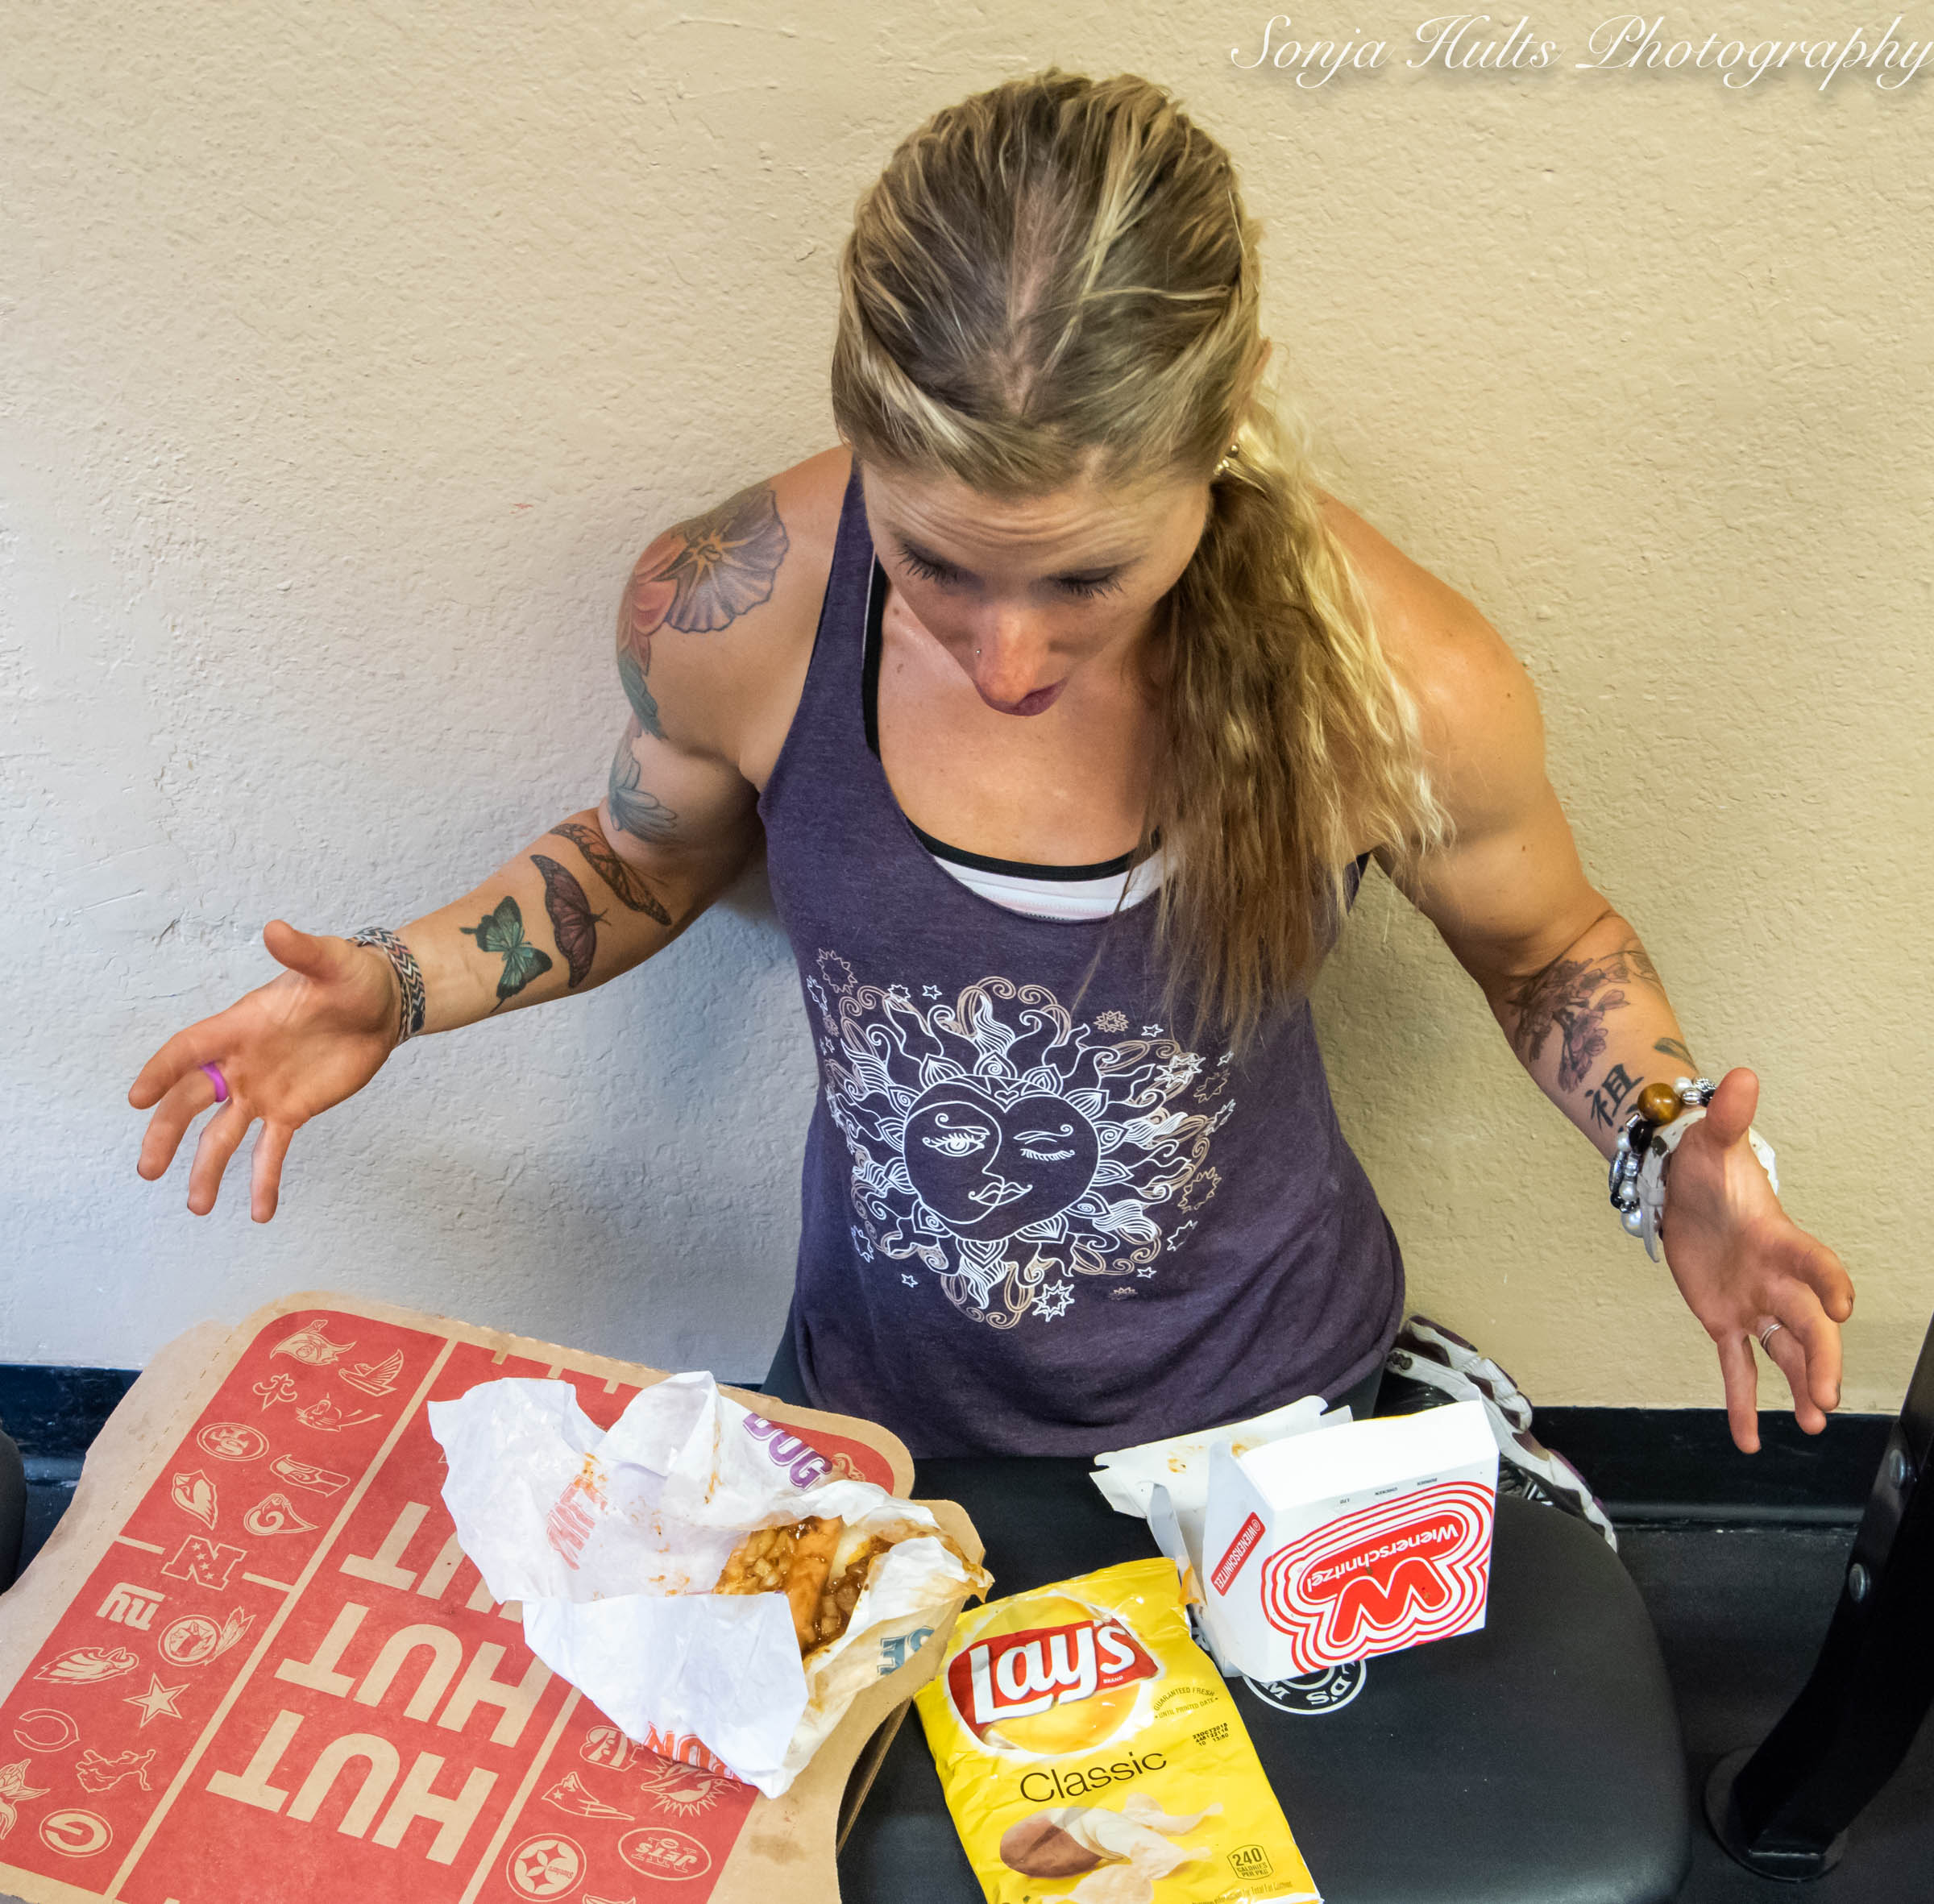 Cheat meal: Do's and don'ts of this indulgence